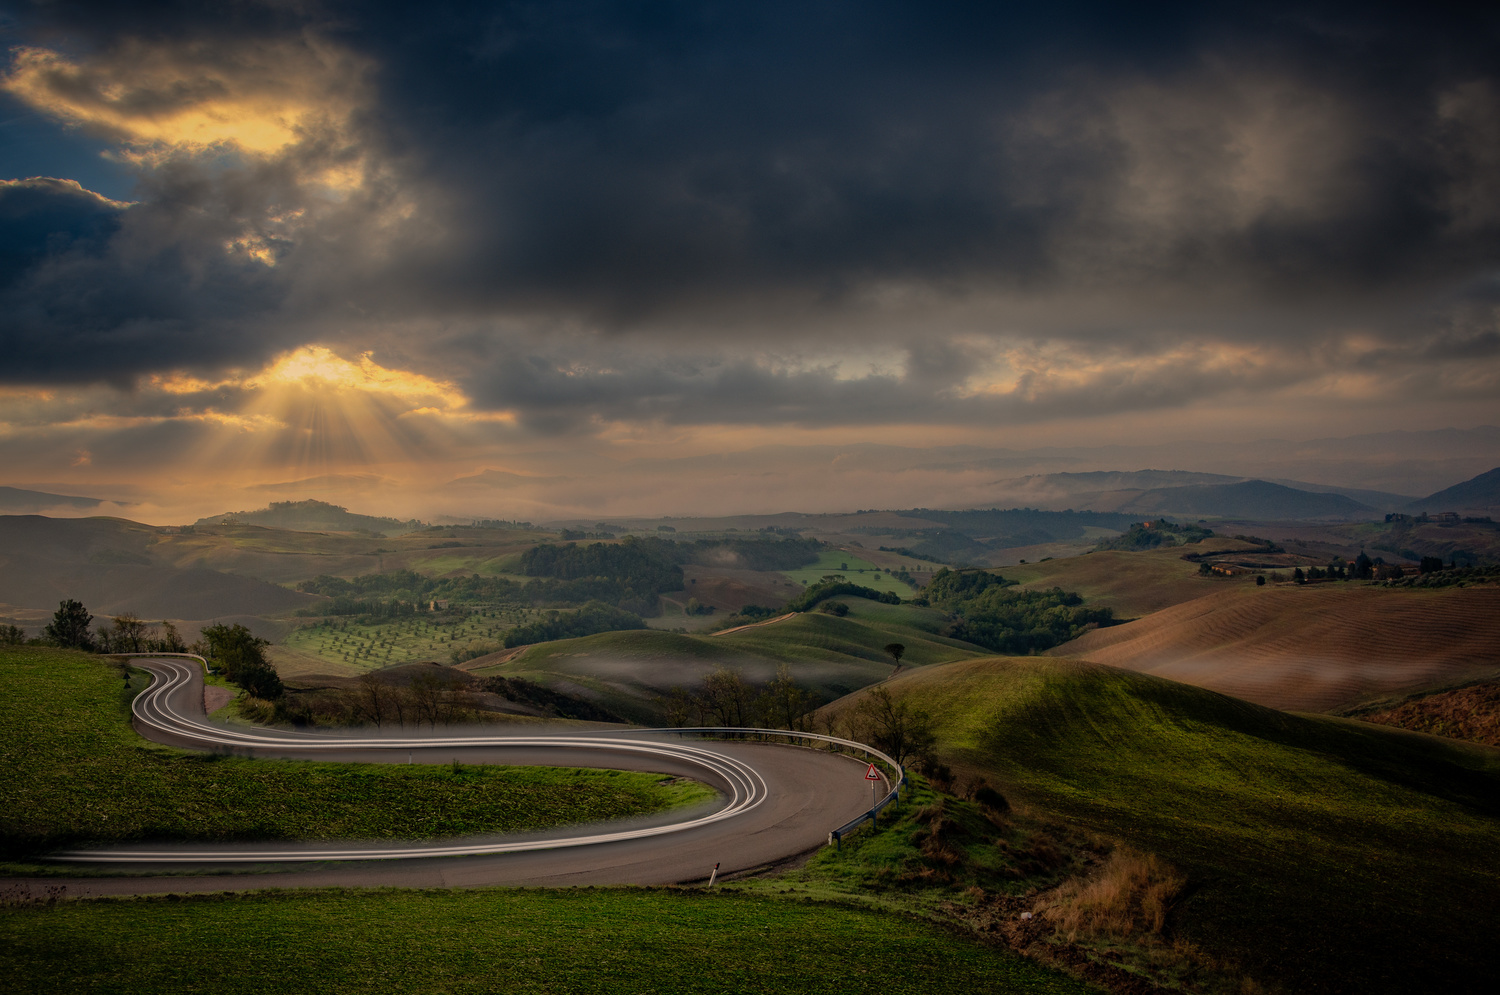 Curve in the Road by Alex Hill